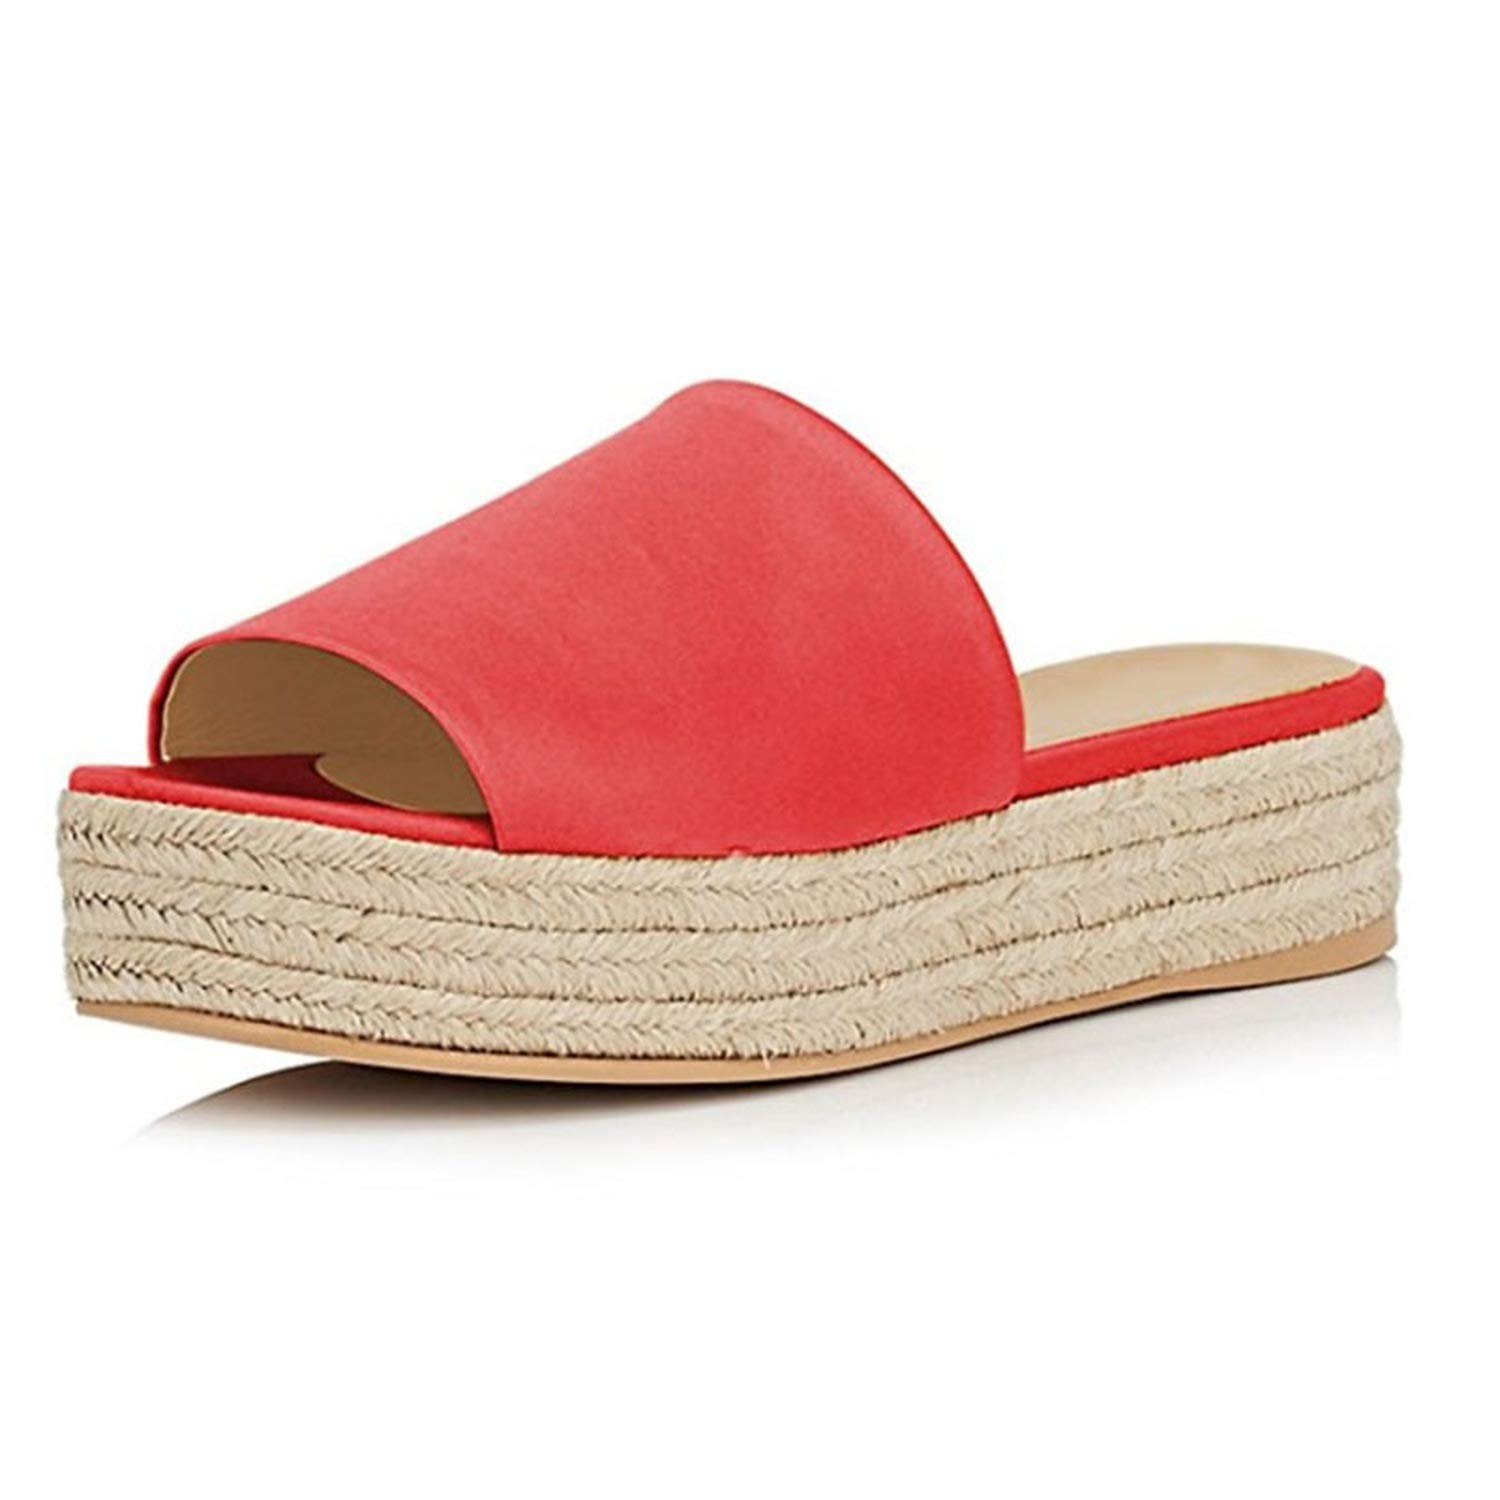 TY02 Platform Med Heel Flat Slippers Yellow Red bluee Big Size 8 9 15 Straw shoes Women's Slides Casual Summer